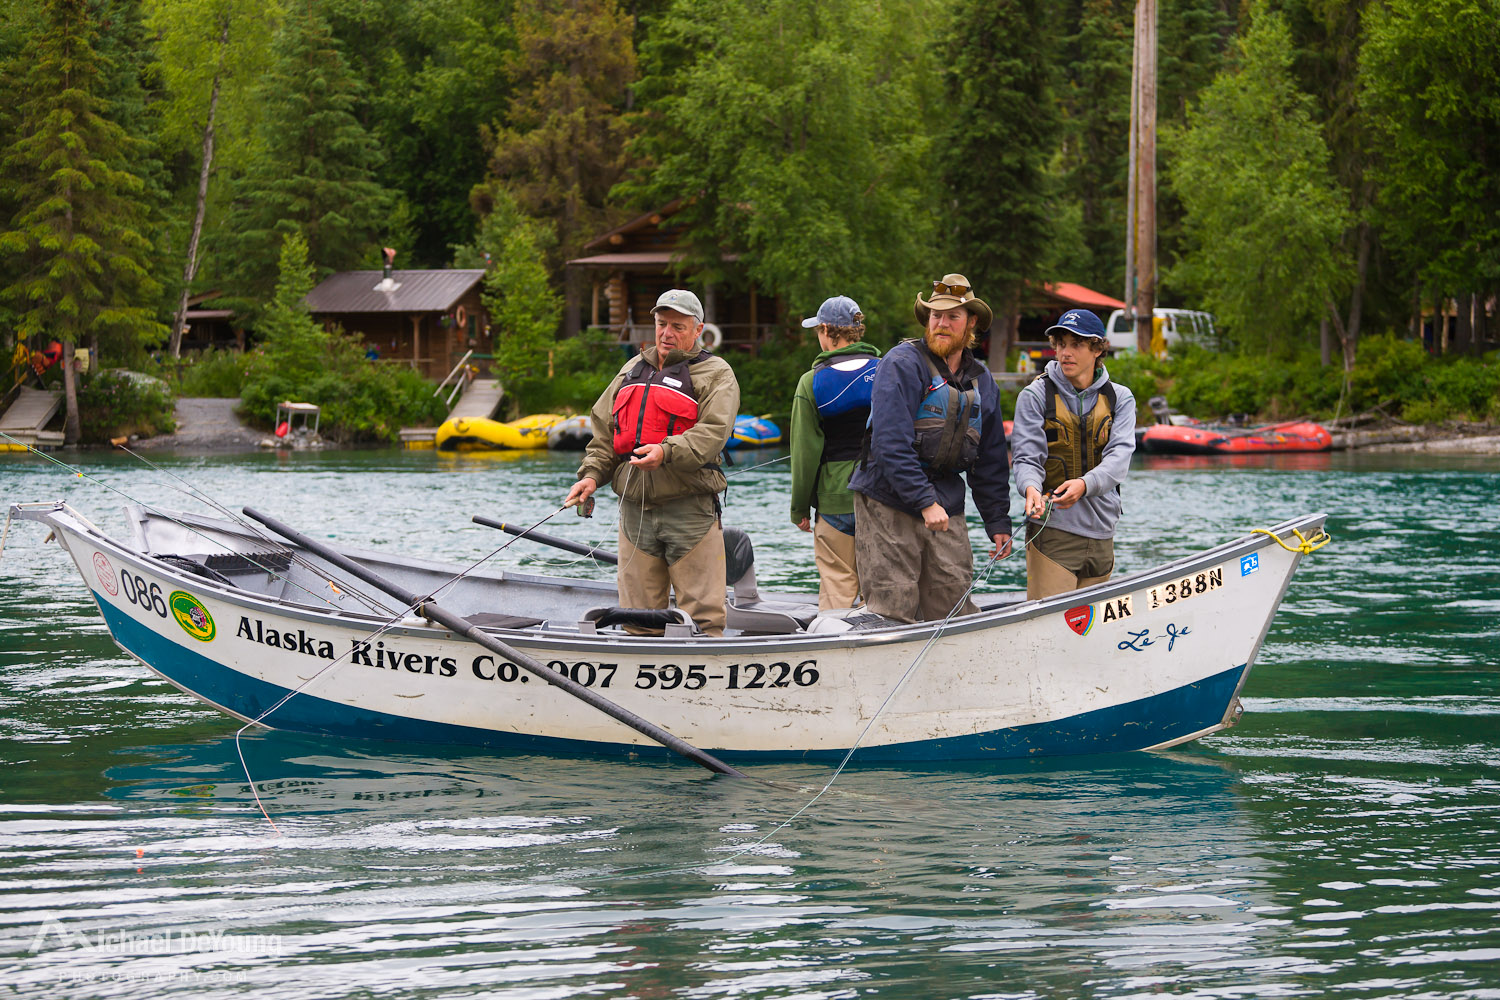 Alaska rivers company guide fishing with professional for Fishing company of alaska